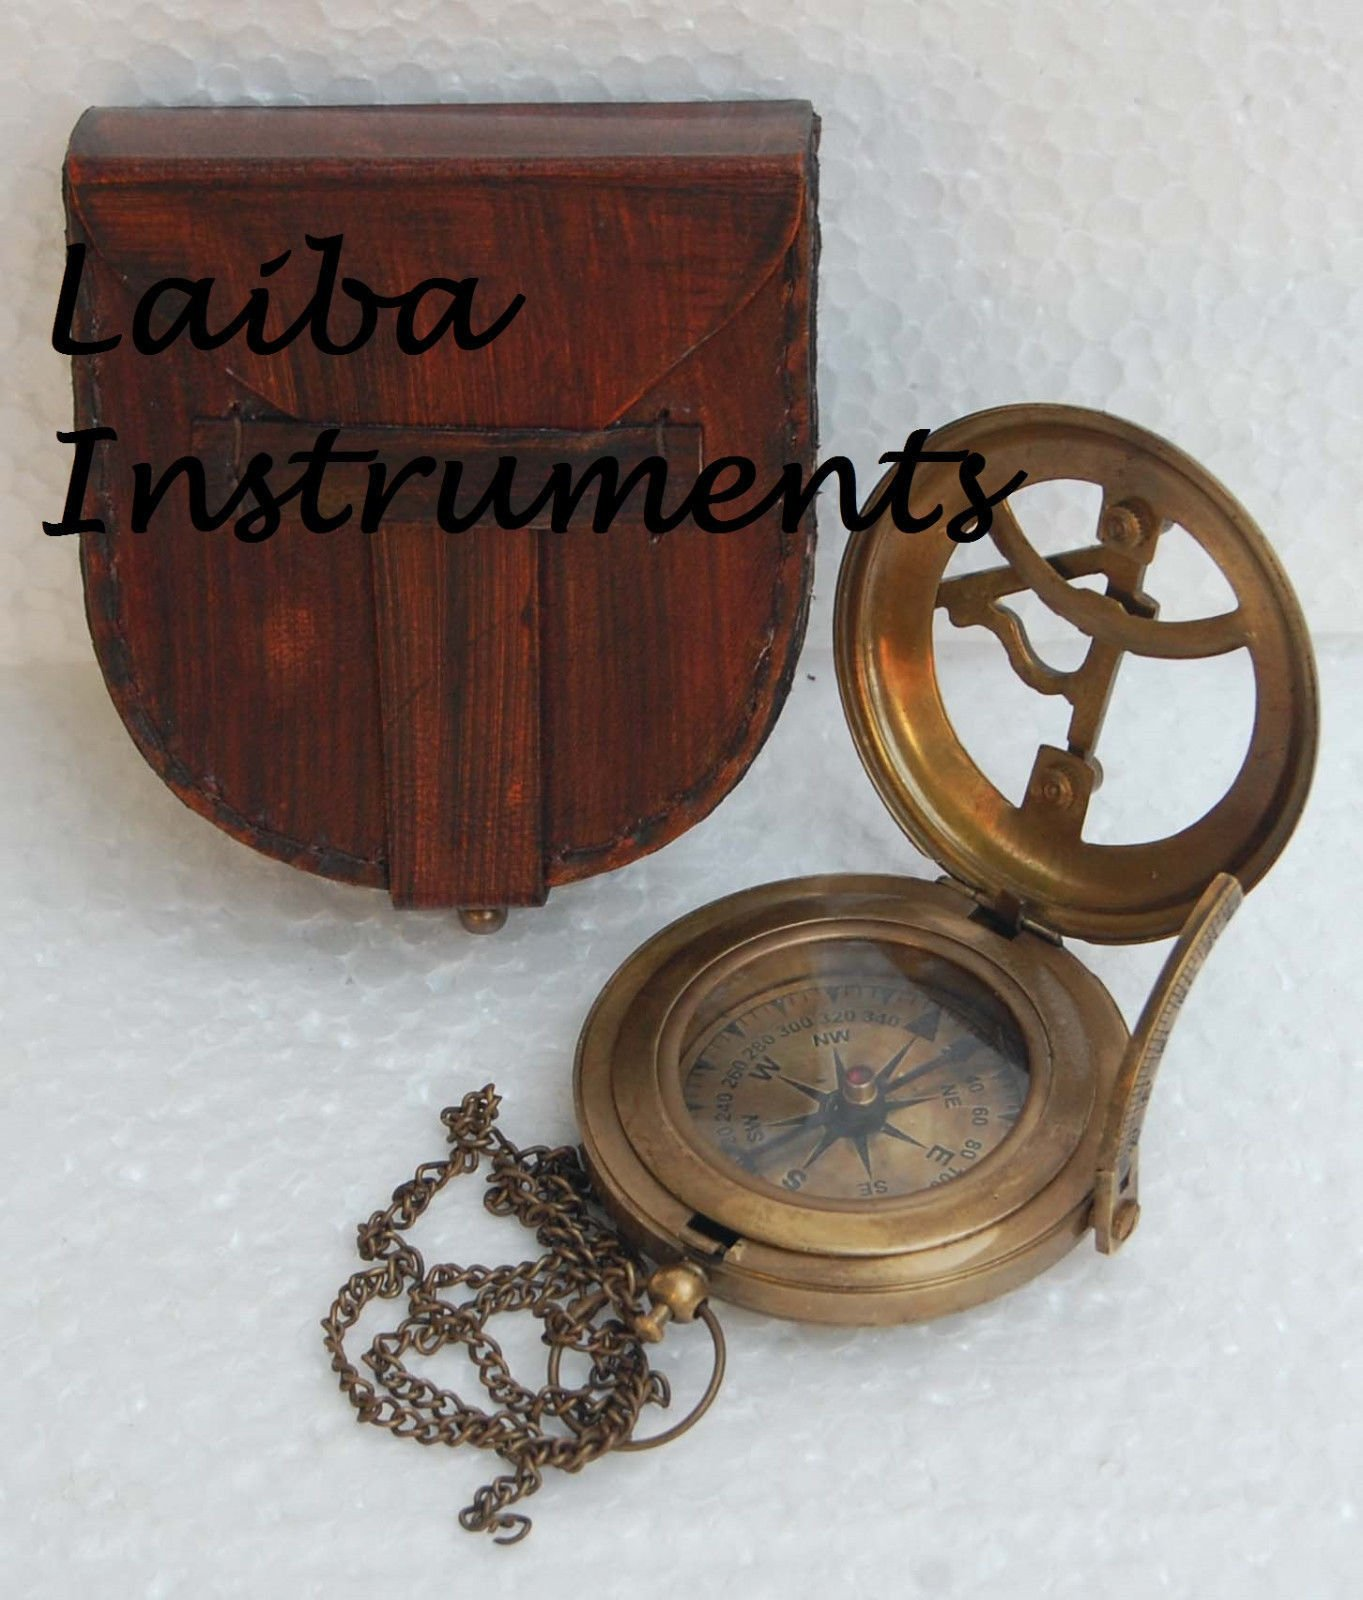 Humaira Nautical OLD ANTIQUE BRASS SUNDIAL COMPASS VINTAGE PUSH BUTTON SUNDIAL COMPASS GIFT A